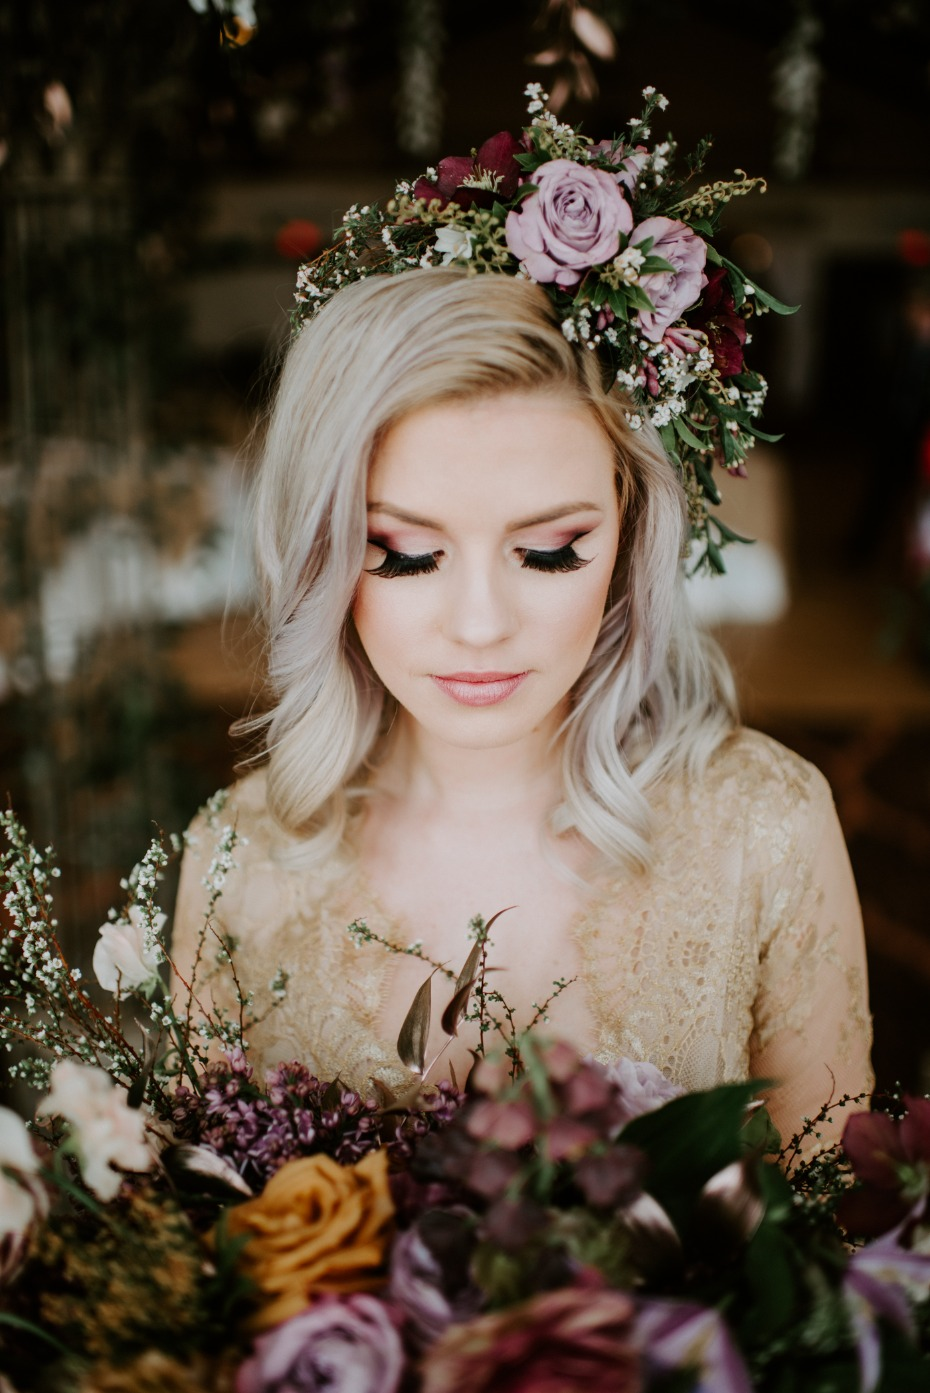 Dream bridal makeup and hair